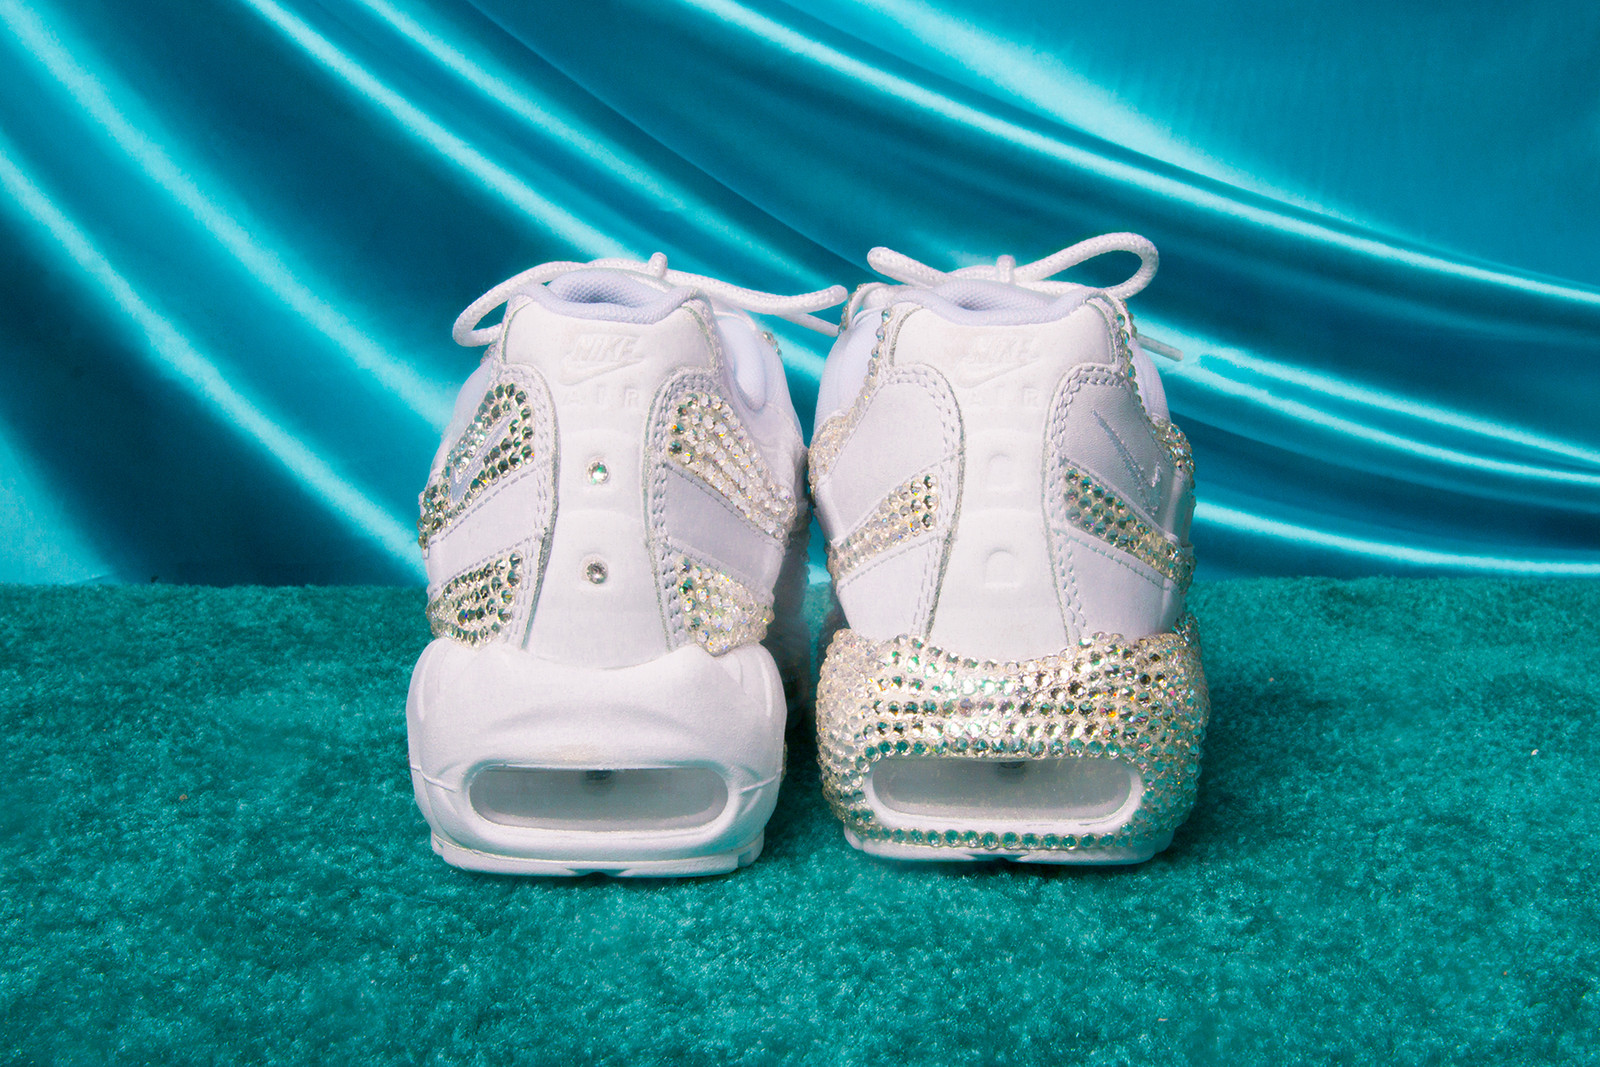 Sophia Wilson. 5 of 5. Nike Air Max Day 2018 Custom Sneakers Women DIY  Customize Swarovski ... ba2d134c9